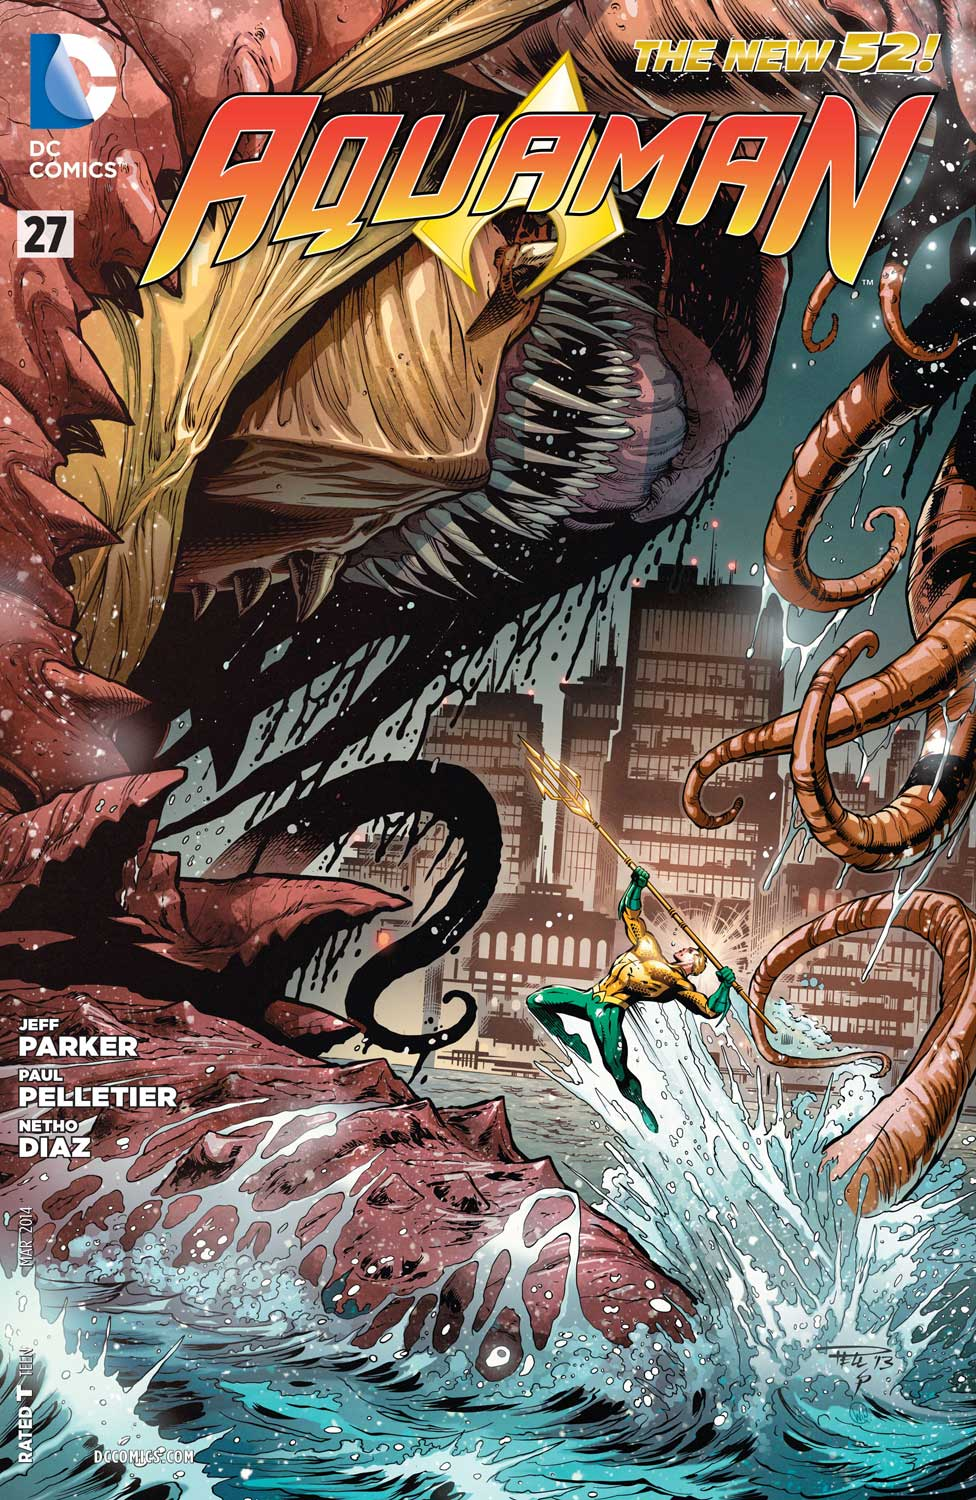 Aquaman #27 cover by Paul Pelletier and Sean Parsons